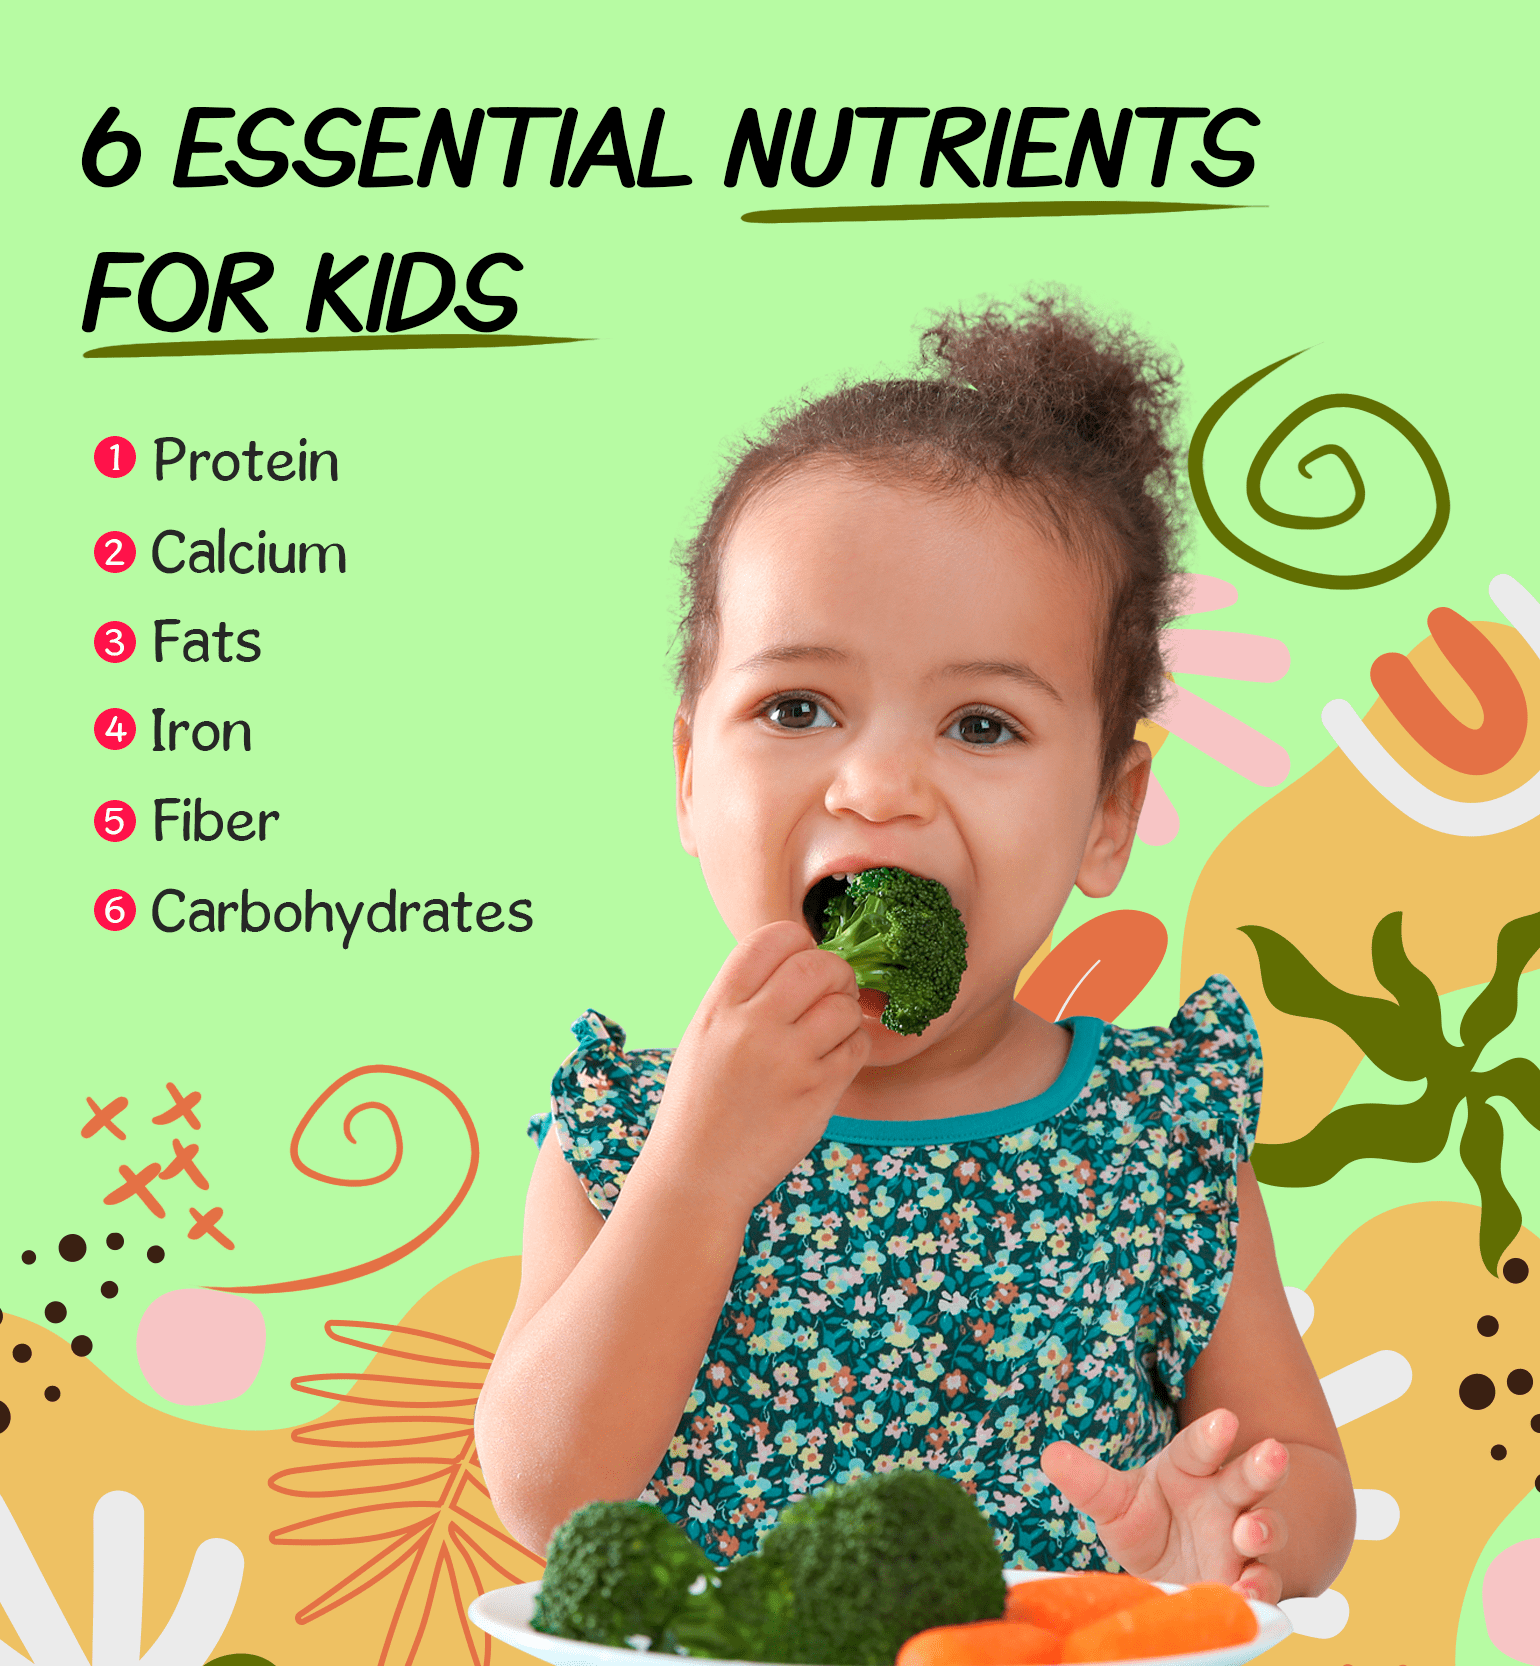 6 essential nutrients for kids